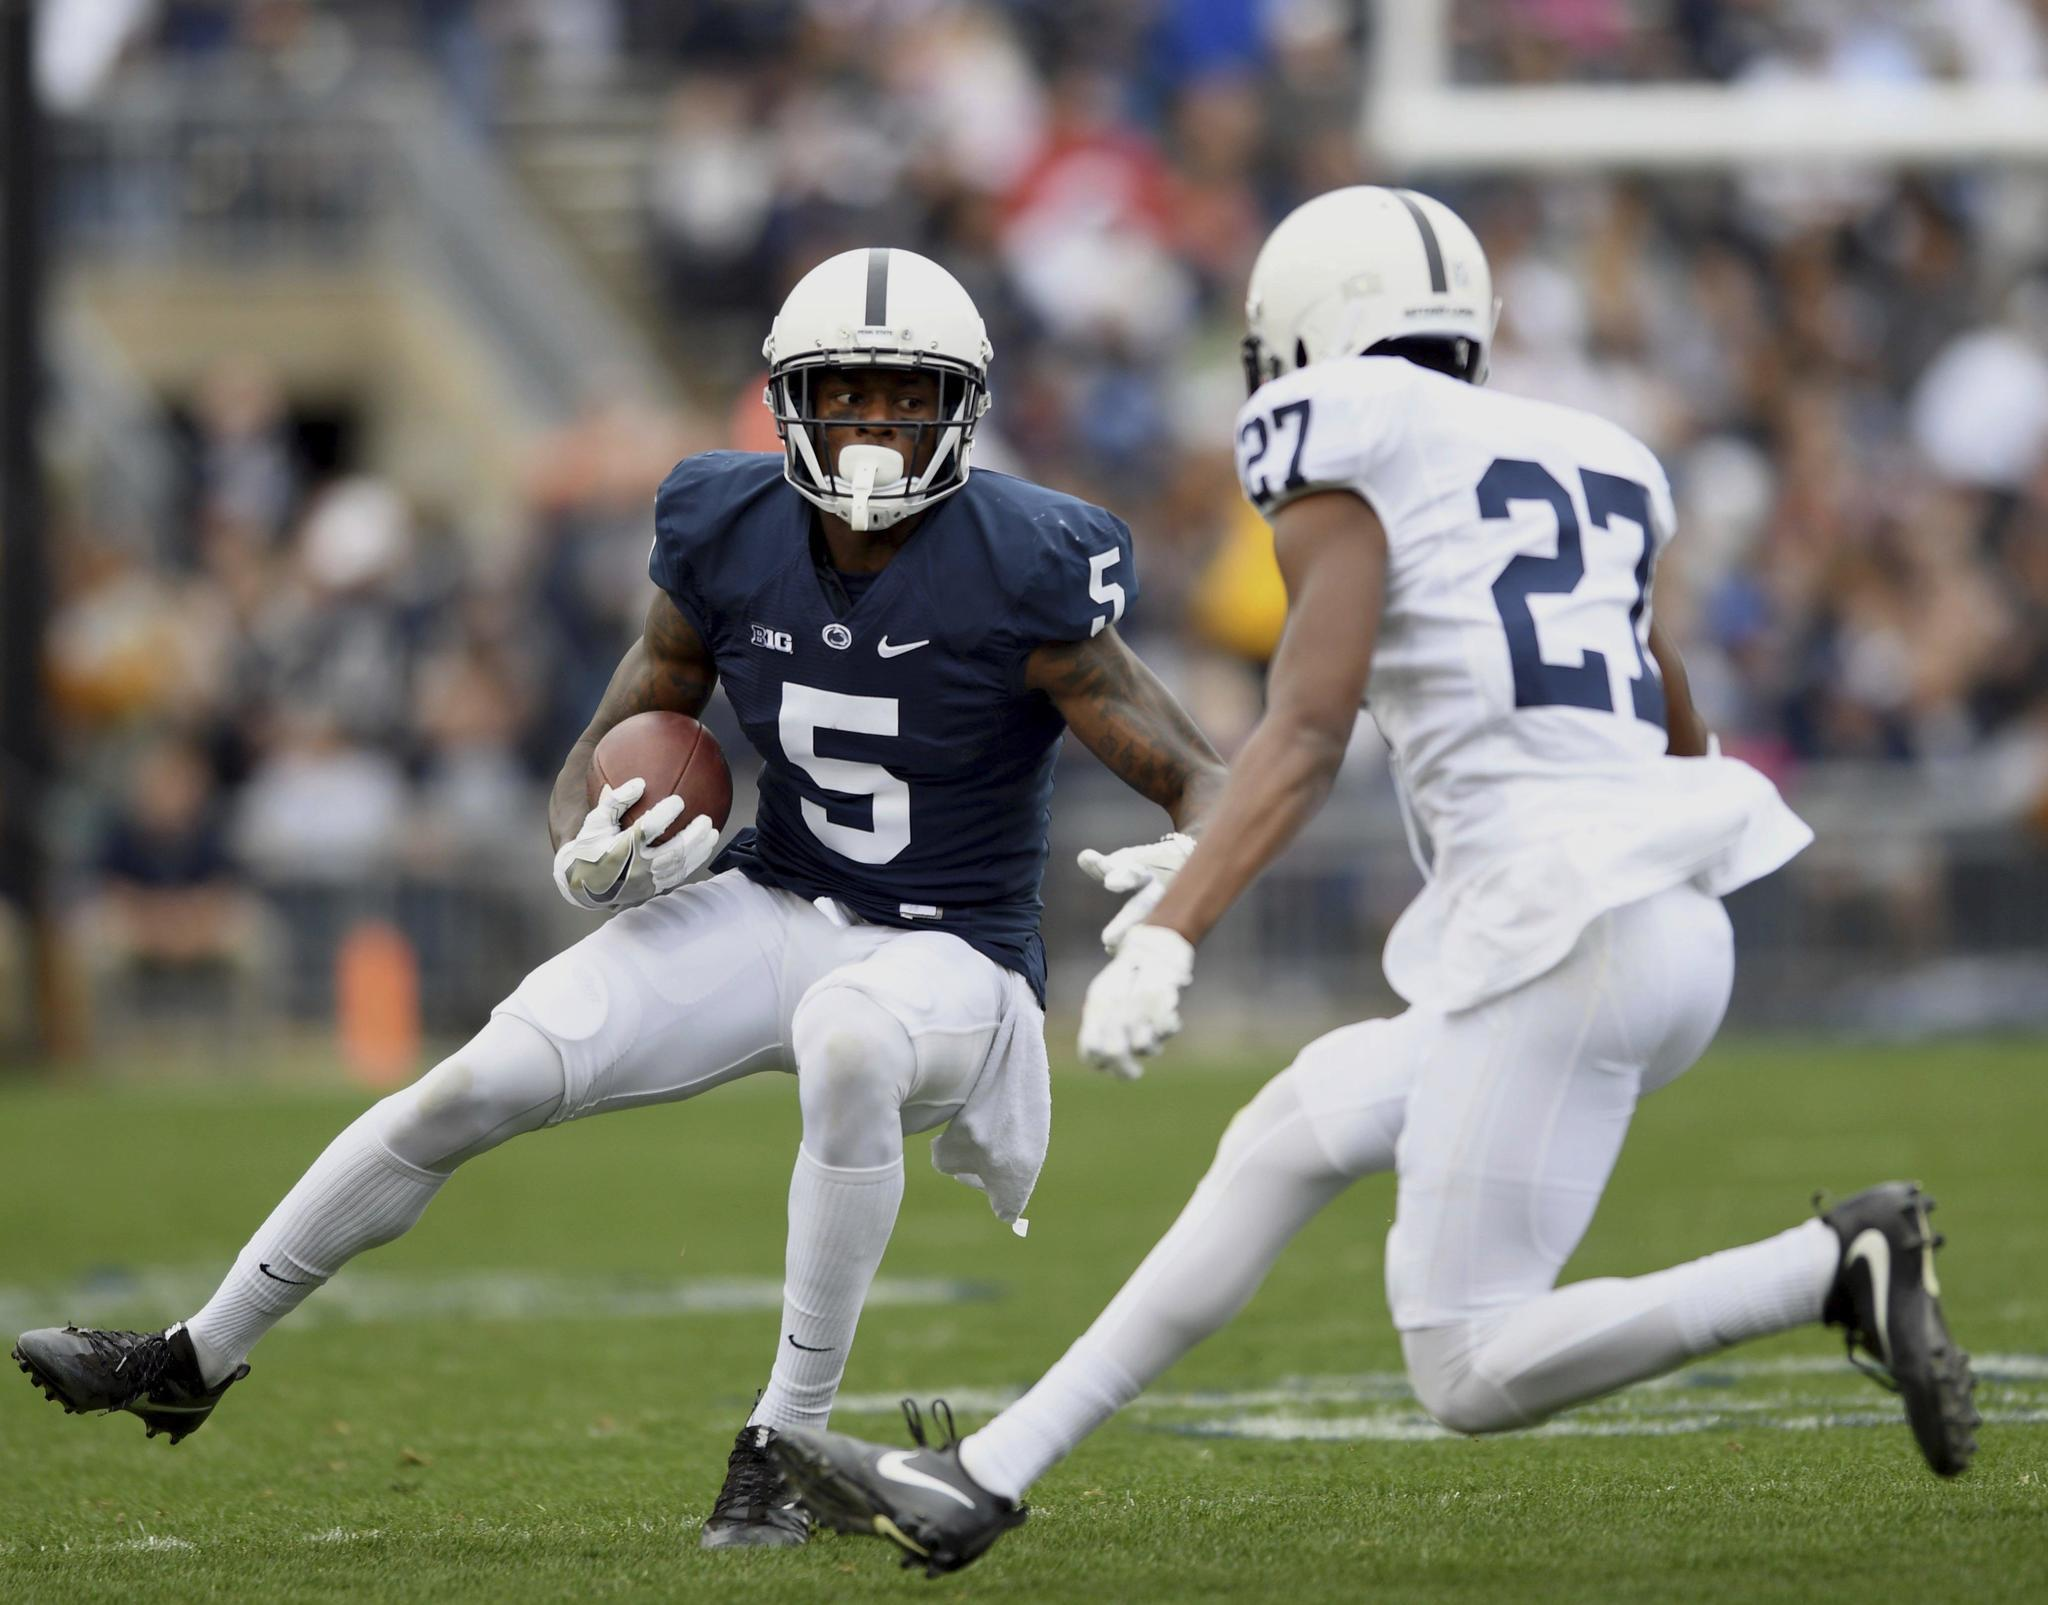 Mc-penn-state-football-blue-white-game-2017-20170422